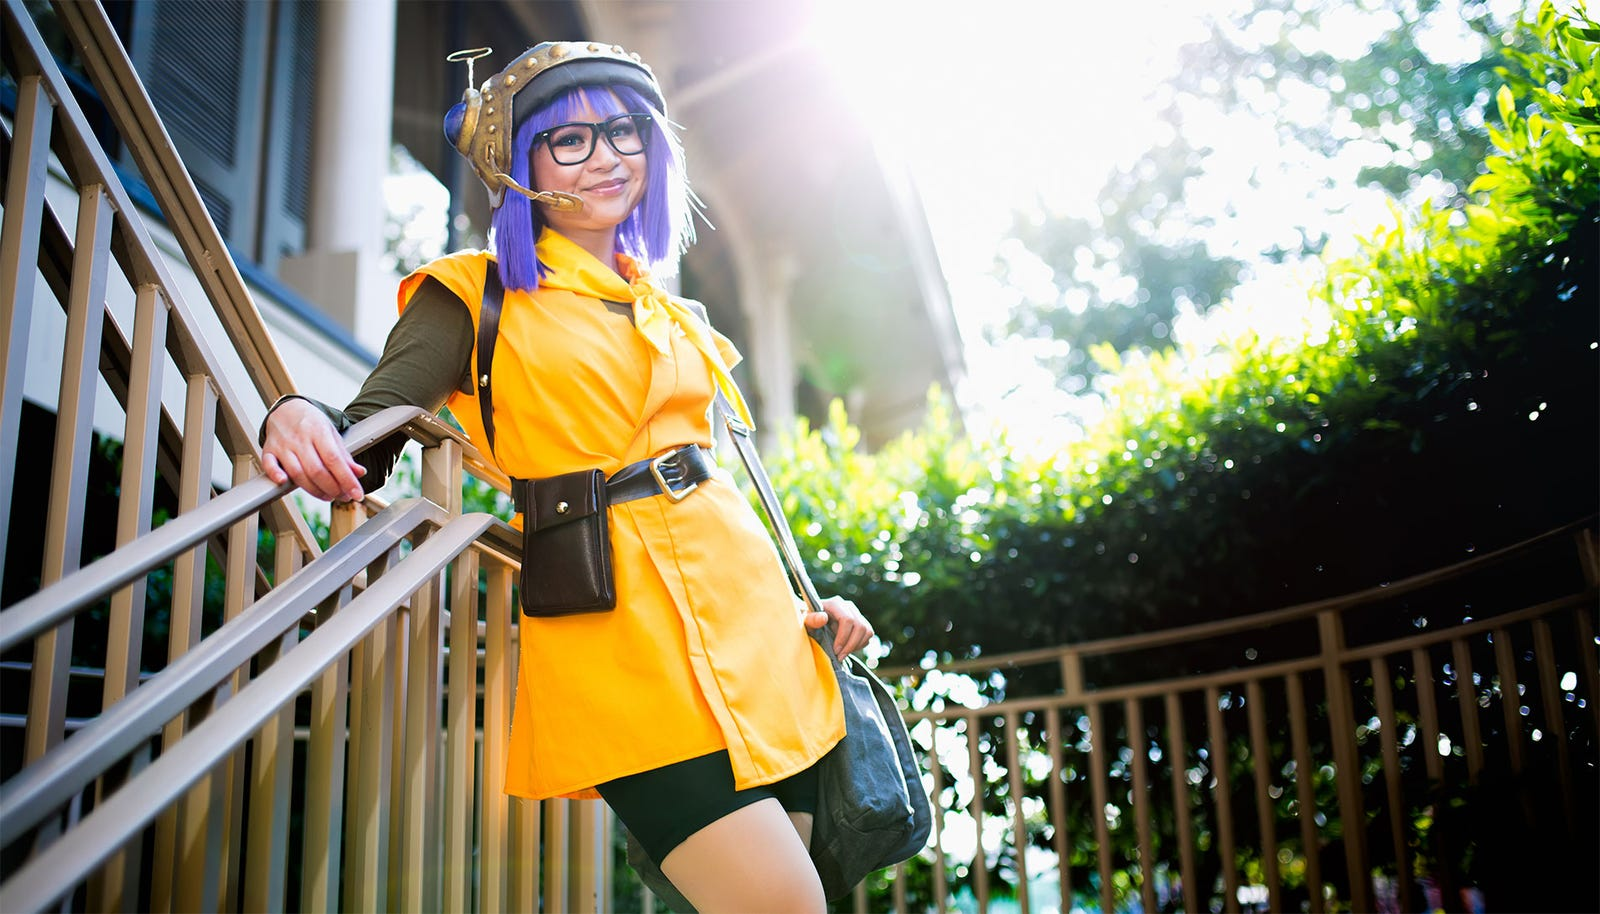 chrono-trigger cosplay